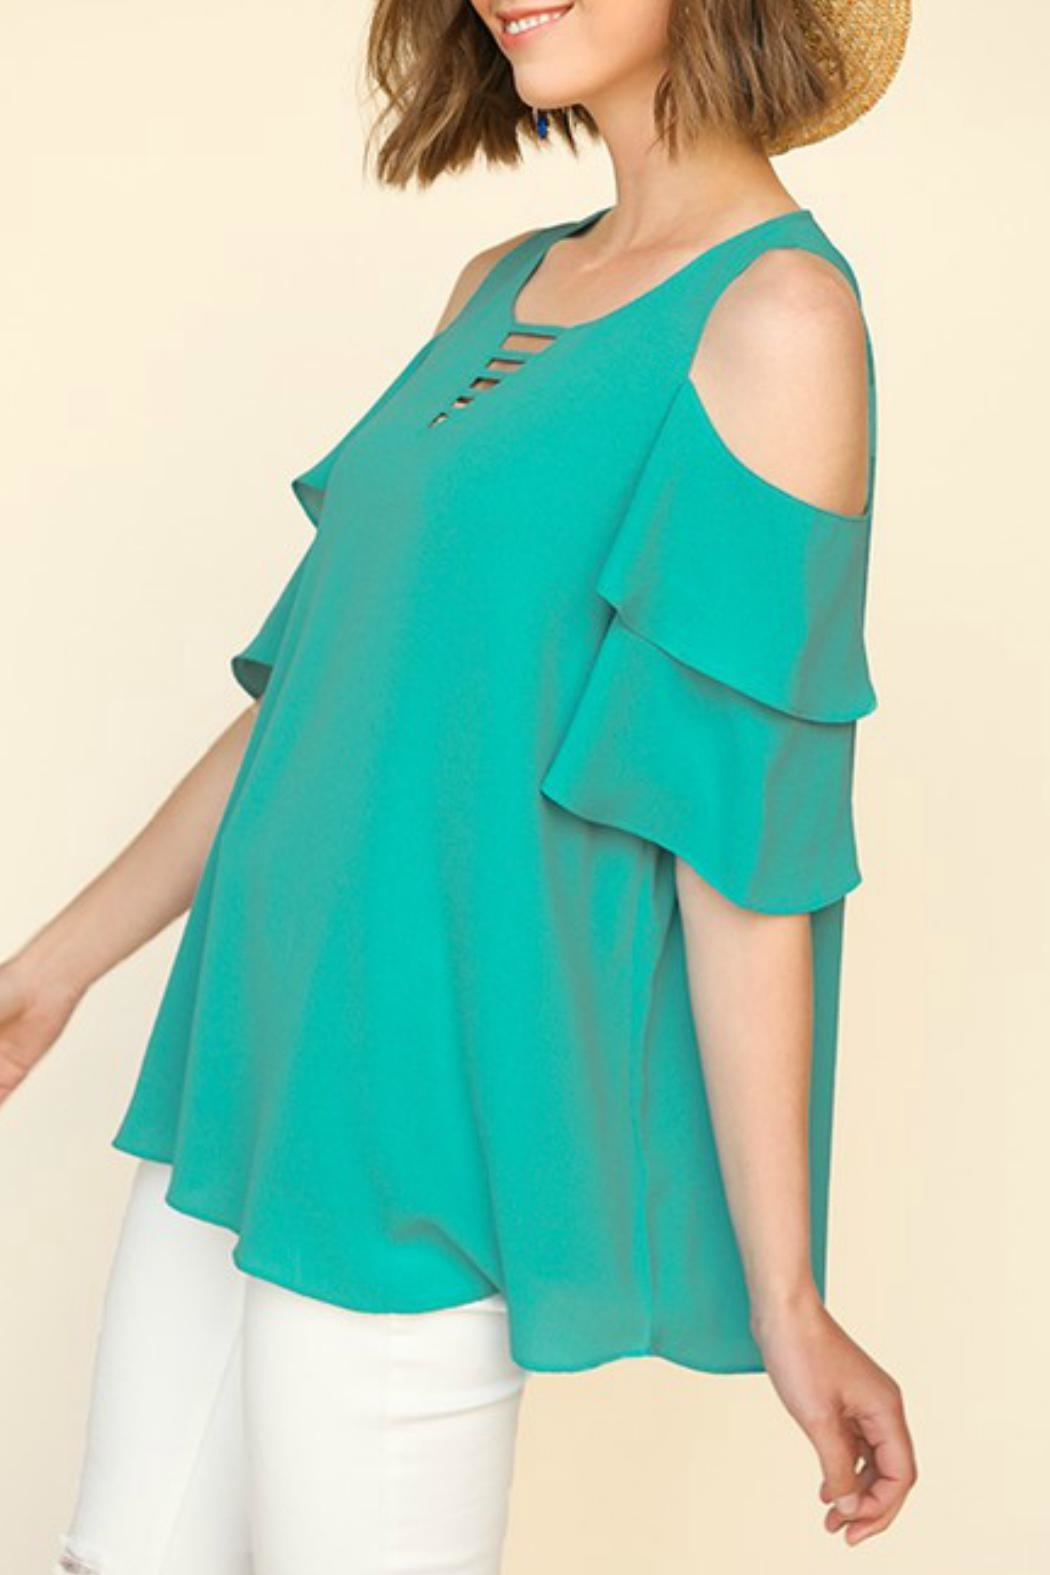 9050a29558ca0 Umgee USA Ruffle-Sleeve Open-Shoulder Top from Texas by Ale s Closet ...